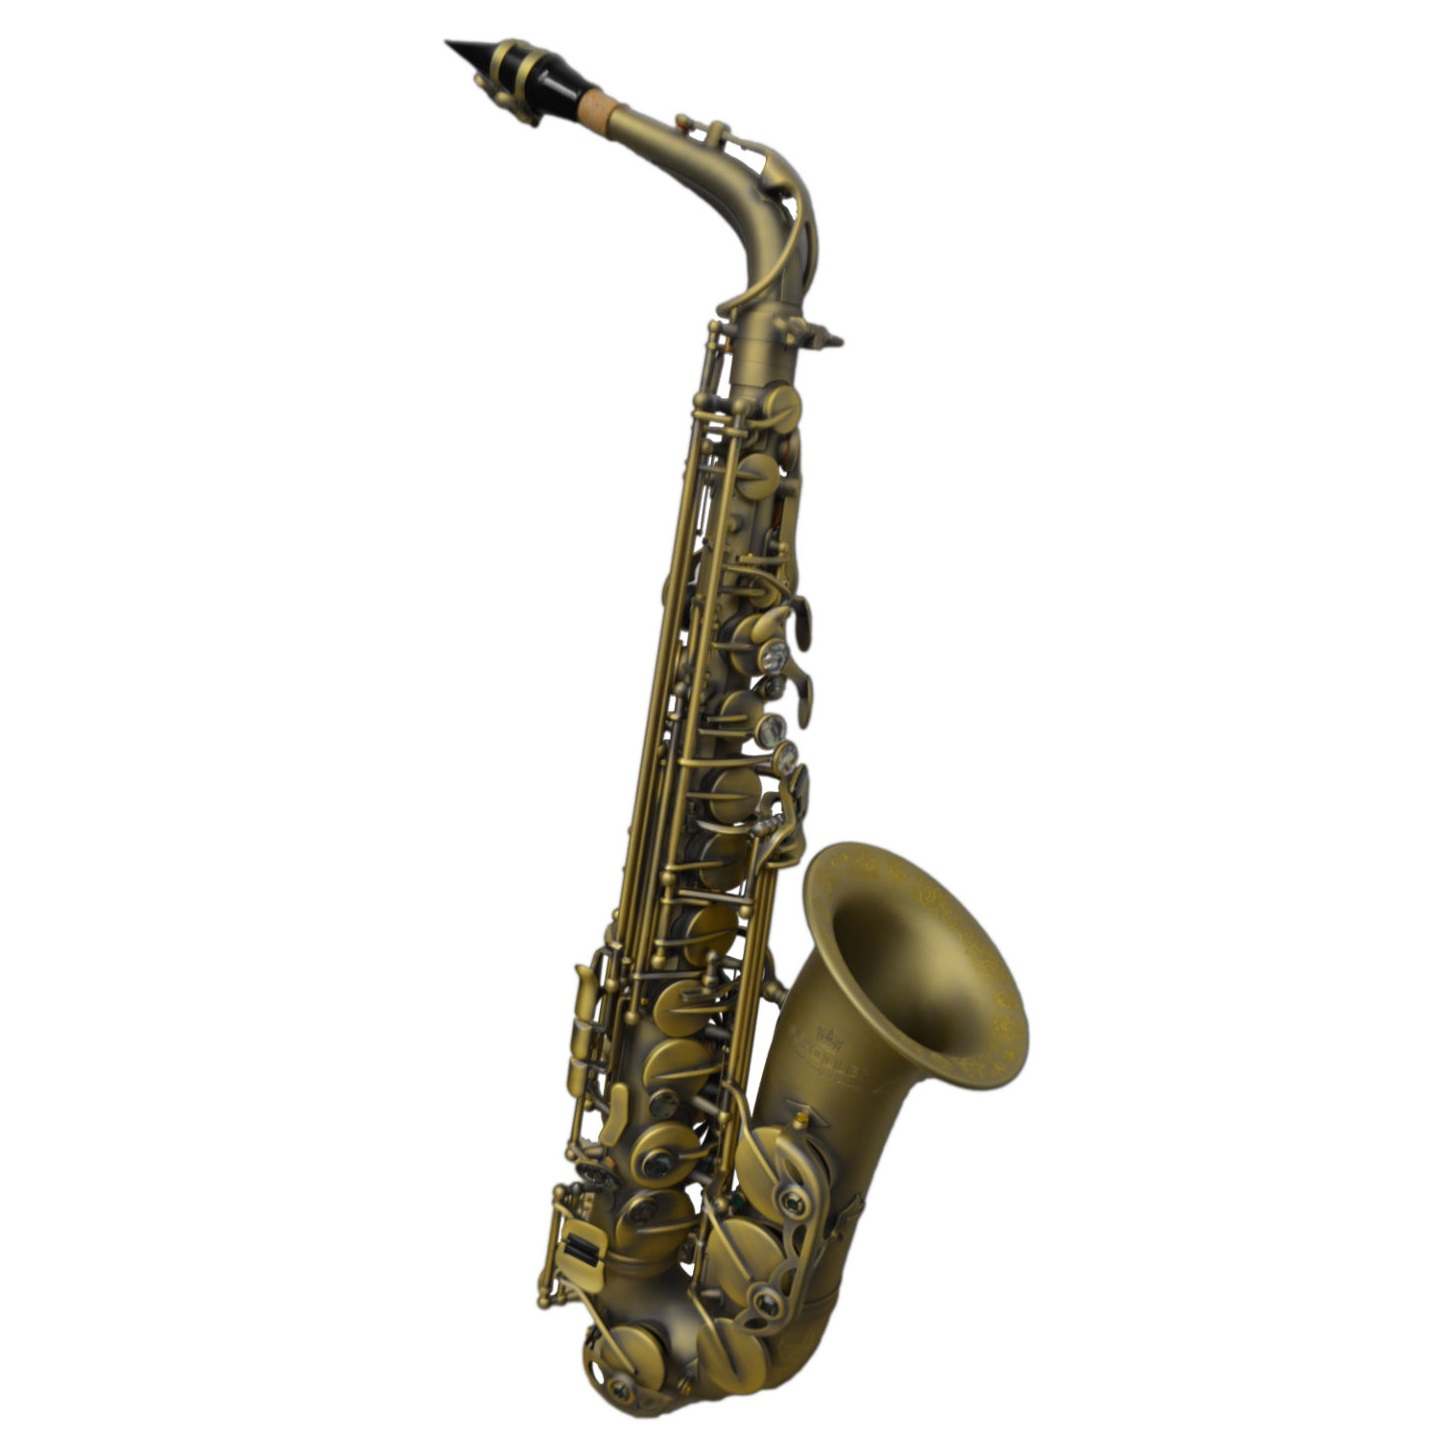 Schiller Elite V Luxus Alto Saxophone - Antique Brass